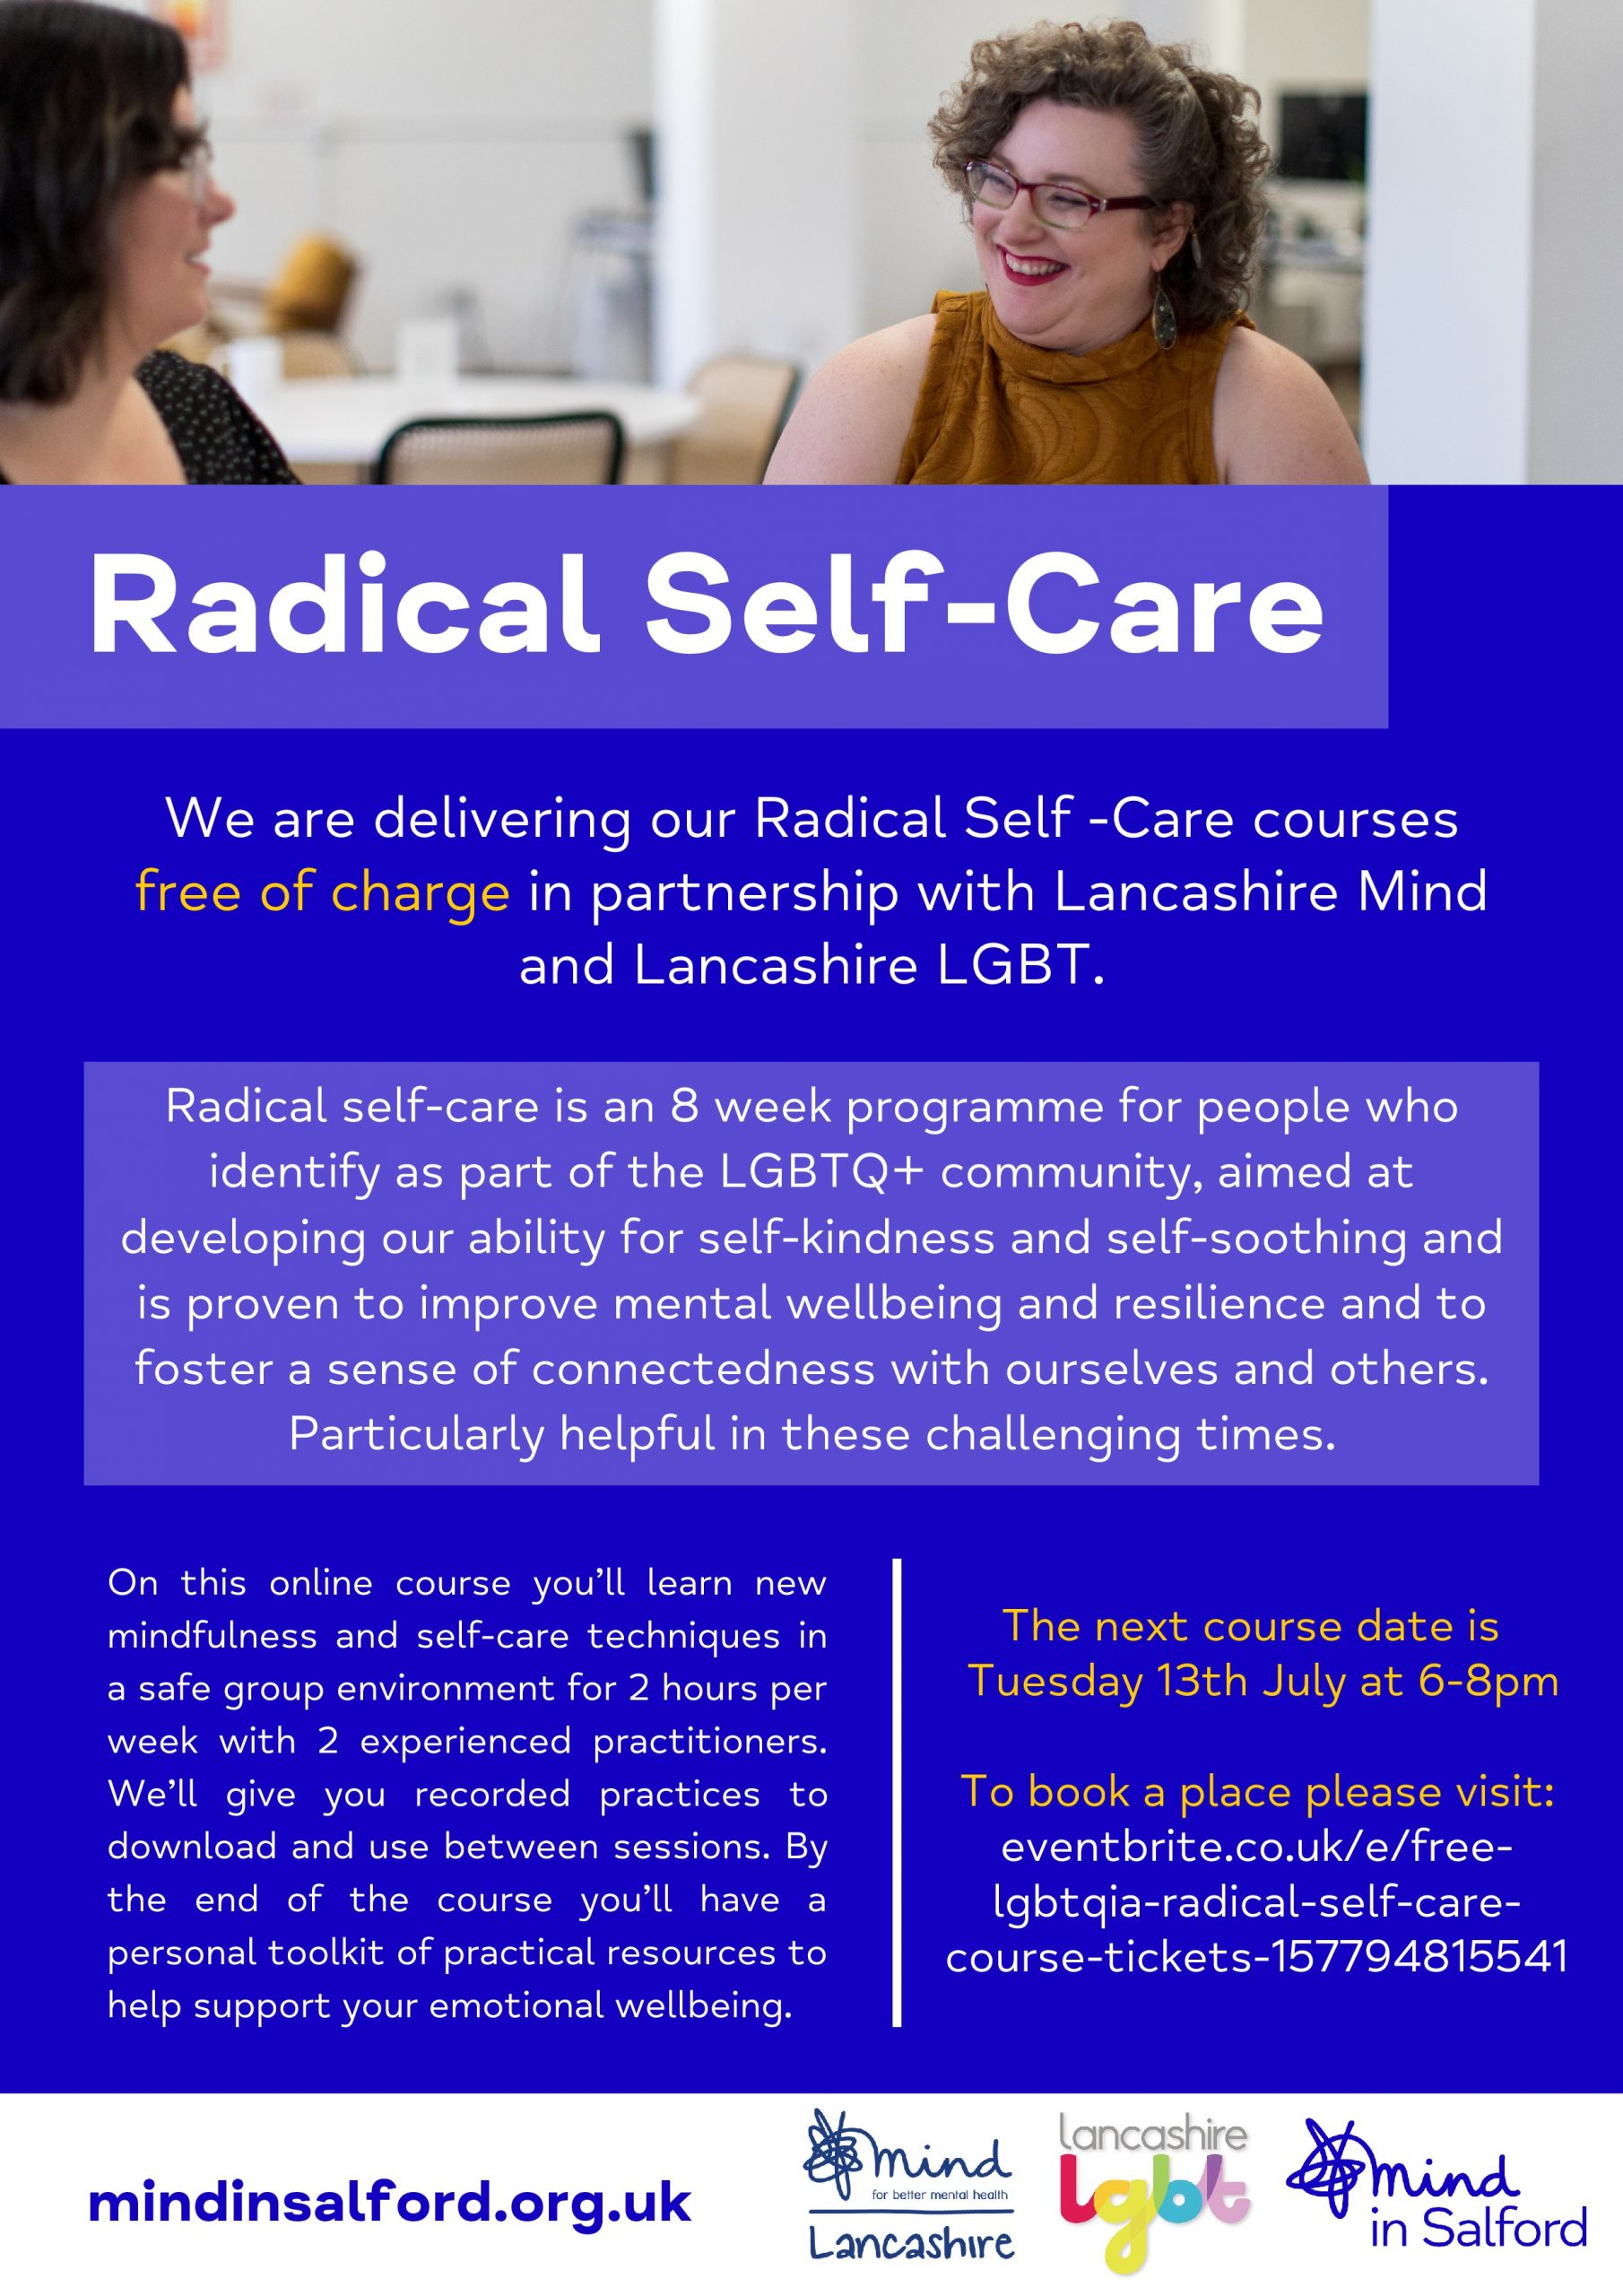 Flyer explaining more about the Radical Self-Care course